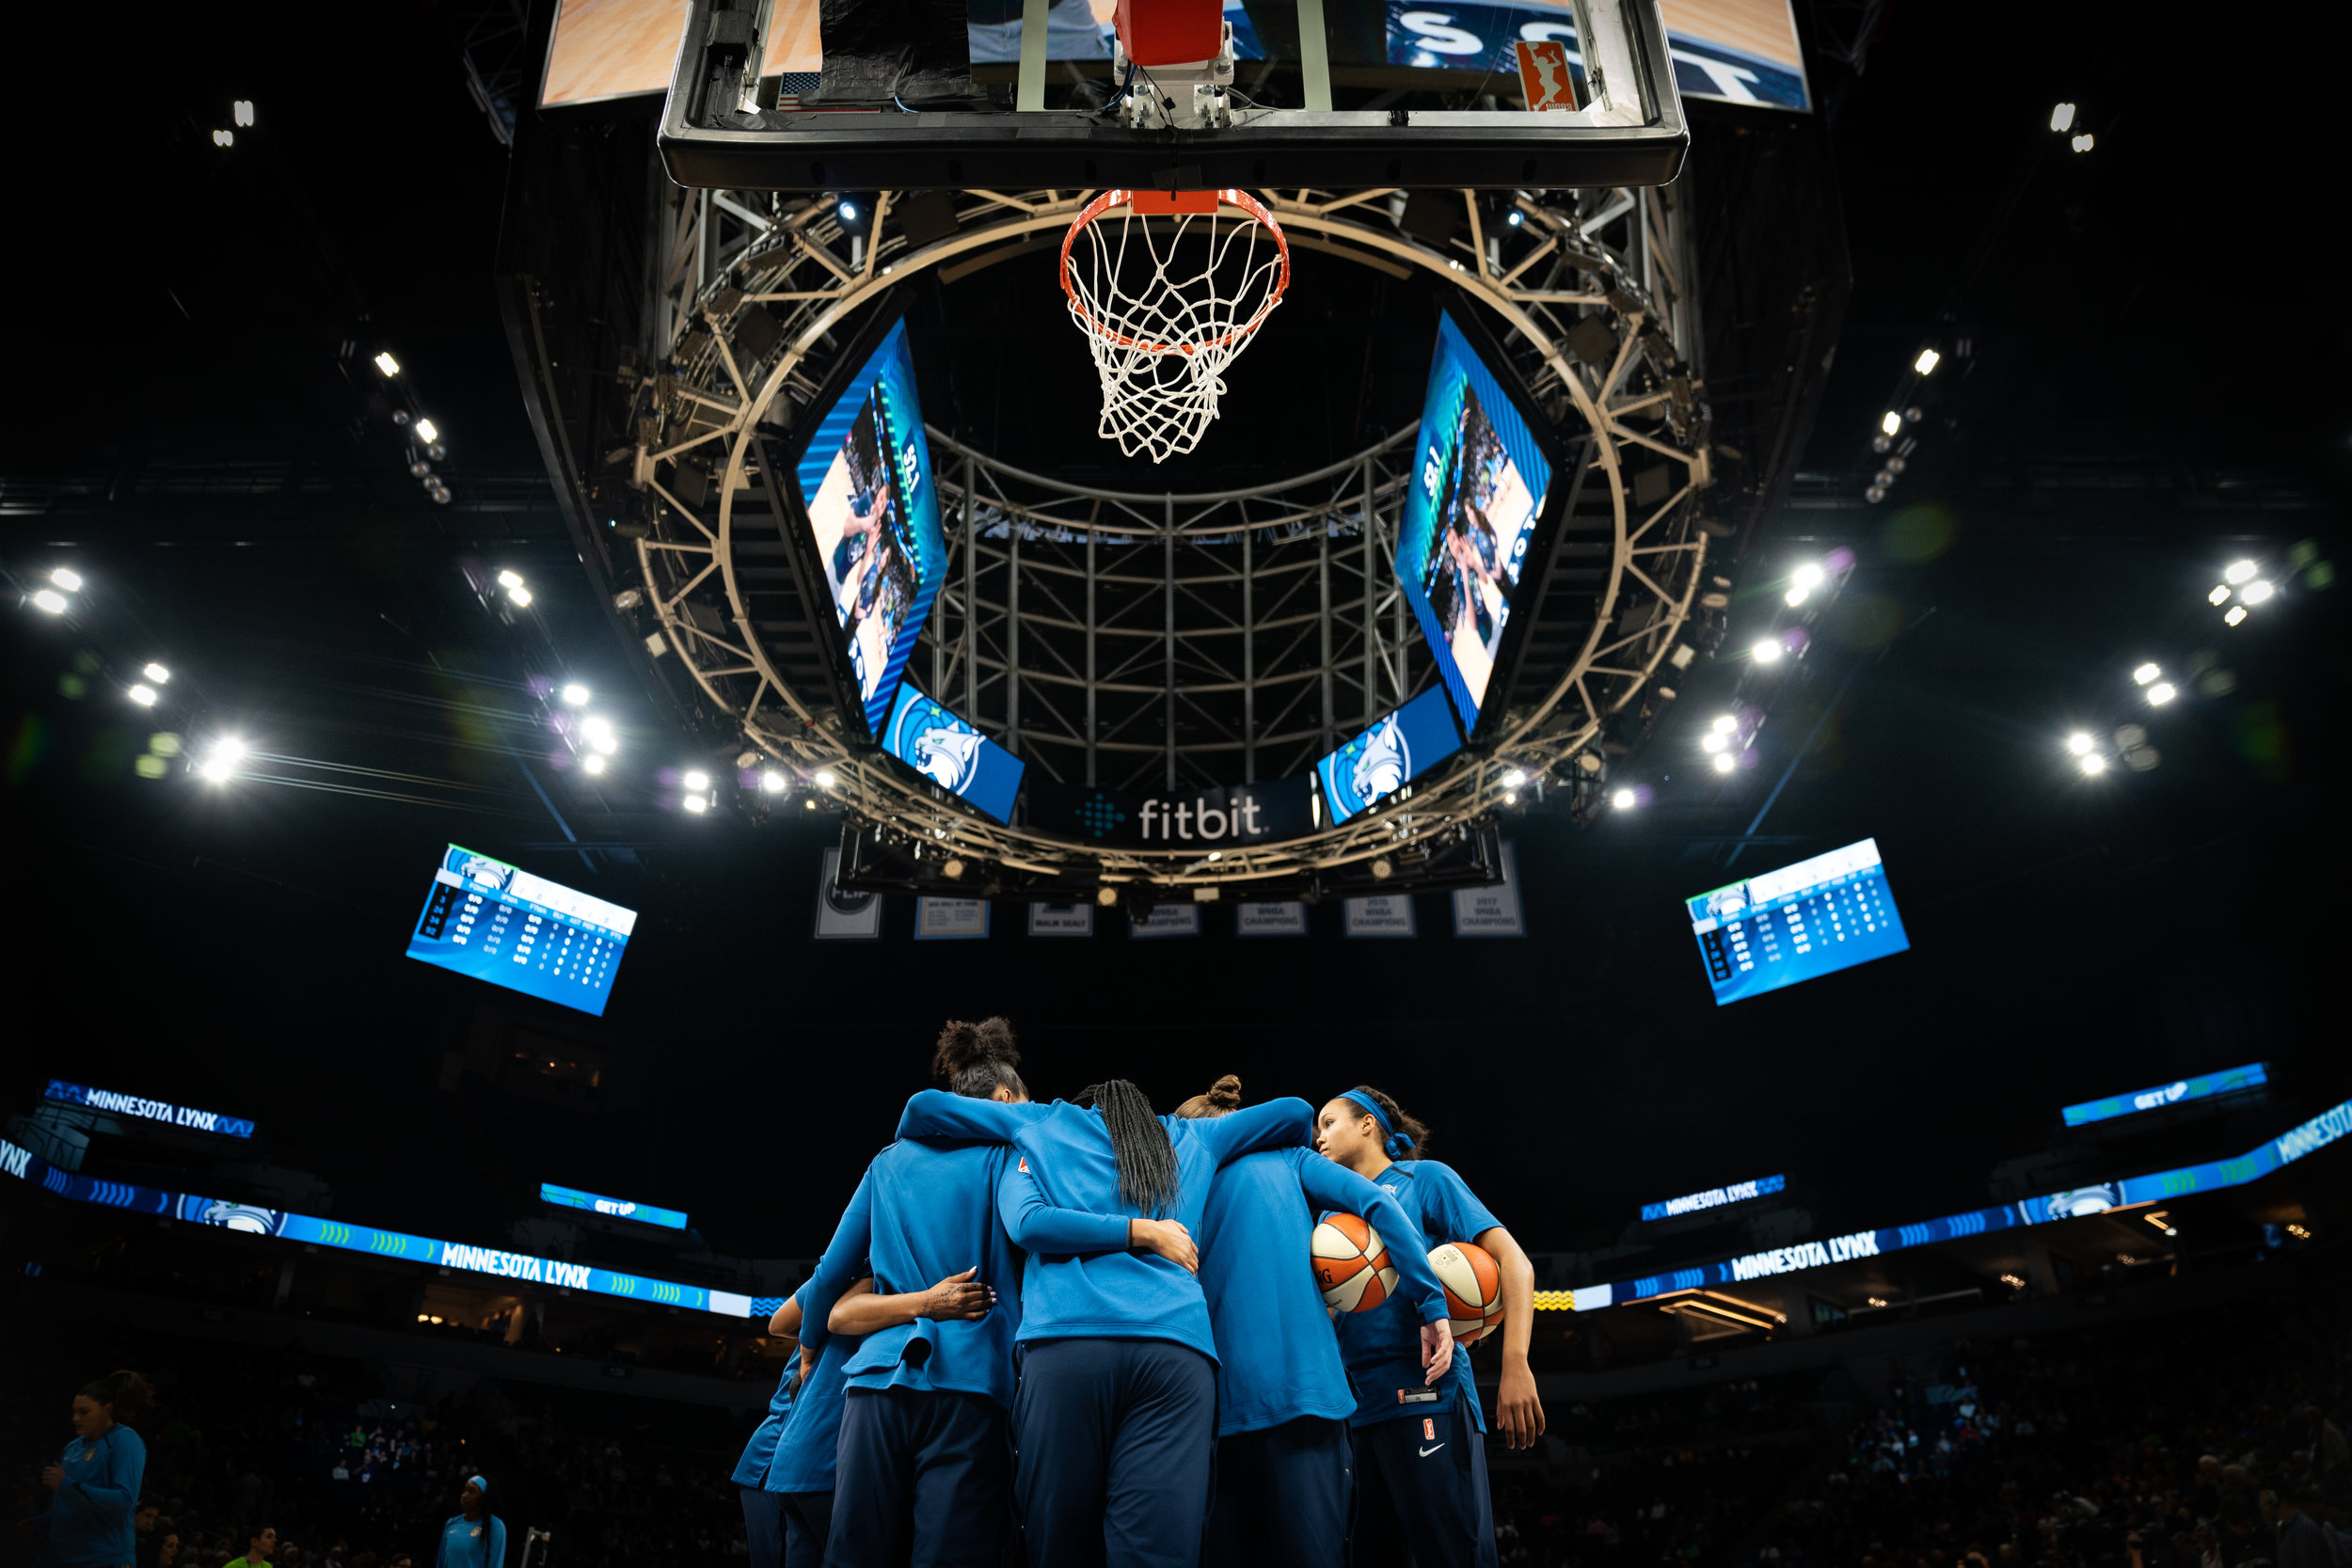 The Minnesota Lynx huddle before a game against the Chicago Sky